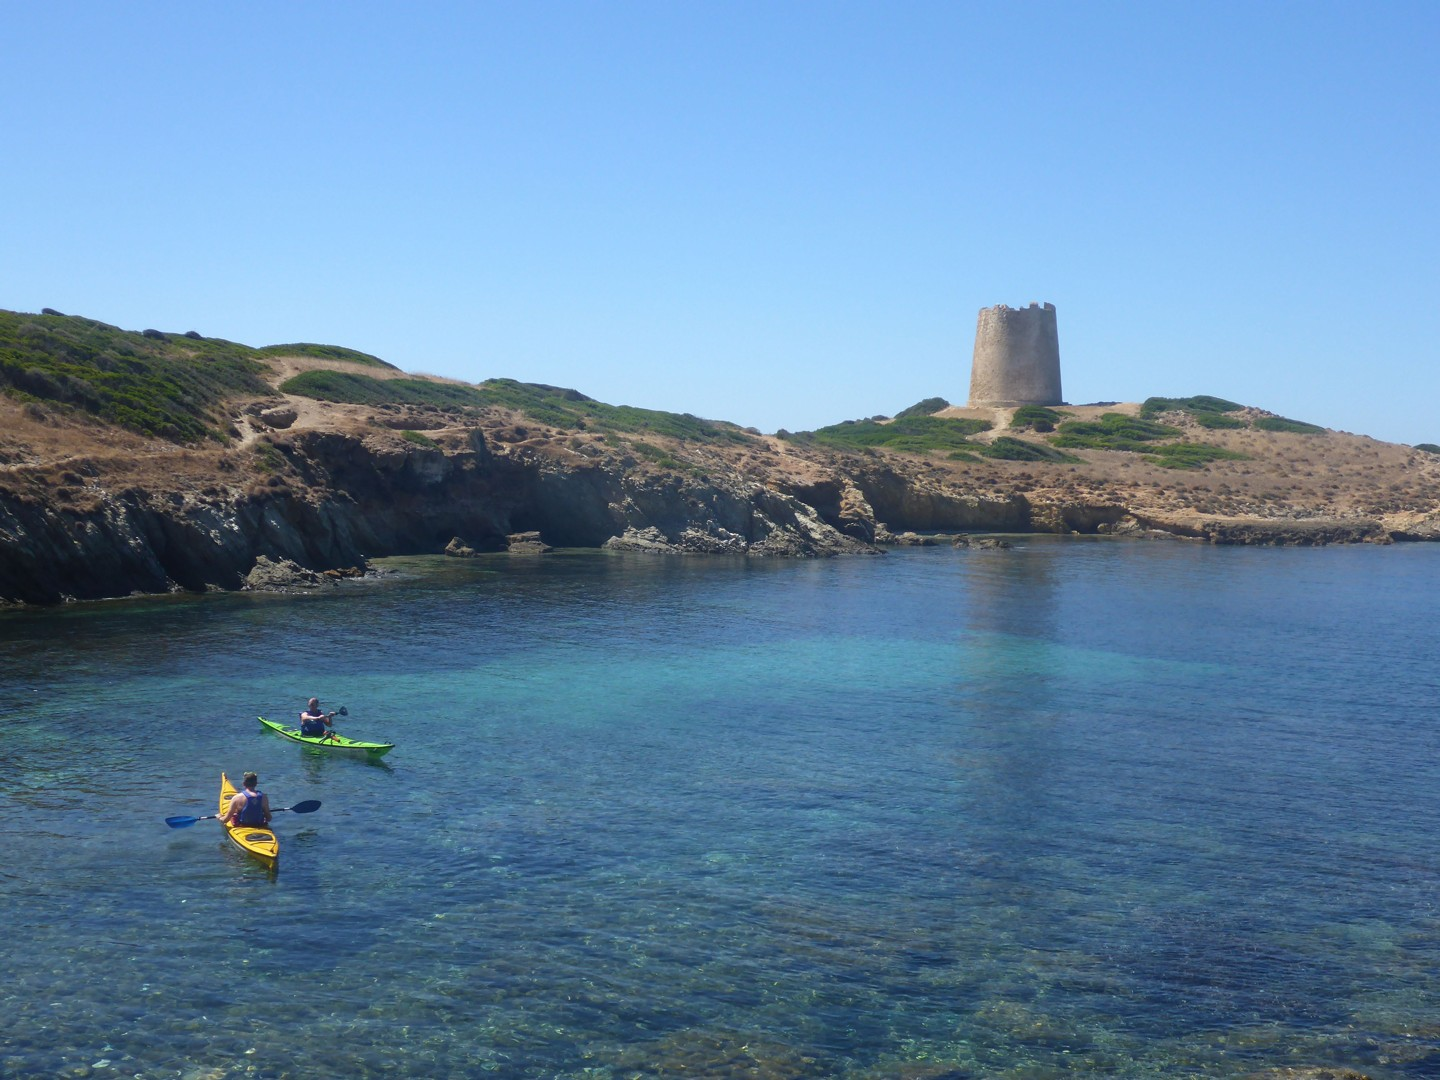 Torre 2.jpg - Sardinia - Southern Sea Kayaking - Kayaking